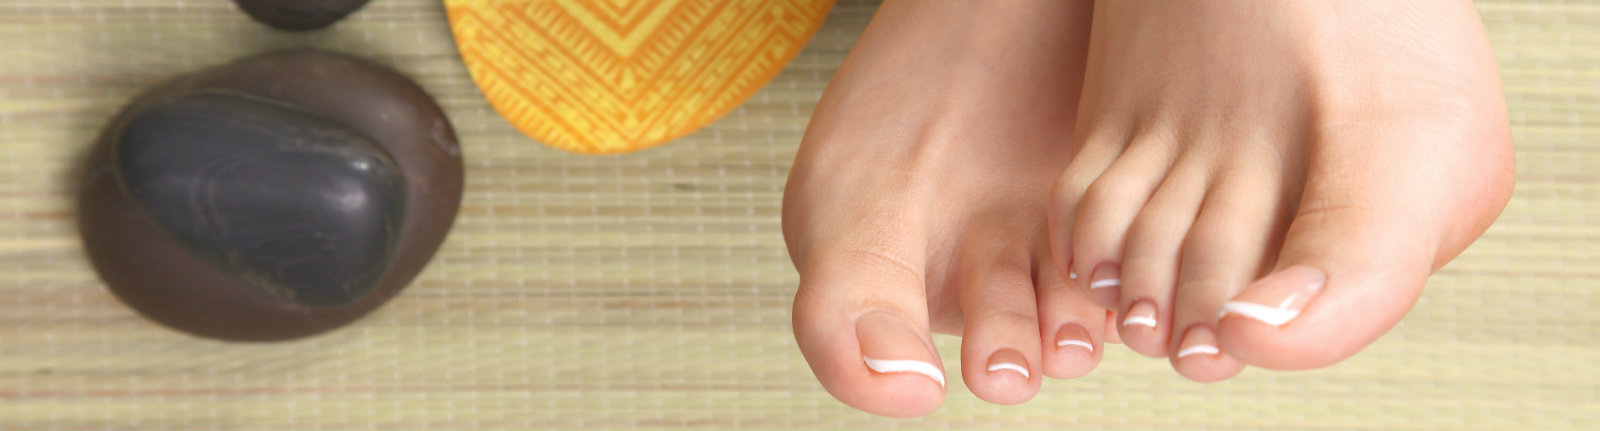 Laser for Fungal Nails | Ripepi Foot & Ankle Clinics, Inc.